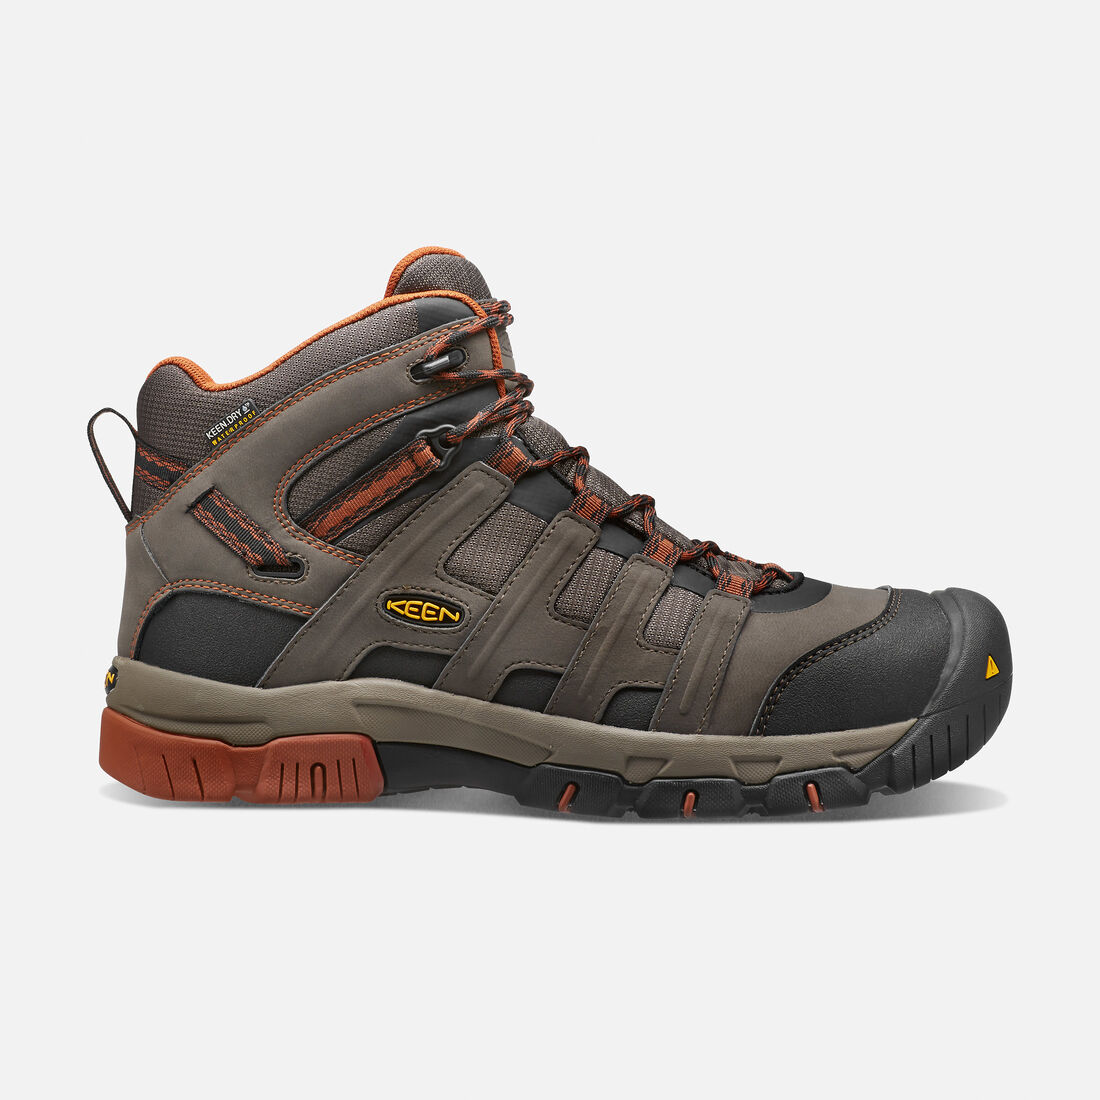 05b267f50d3bcb Men s Omaha Waterproof Boot (Steel Toe) in Black Olive Gingerbread - large  view